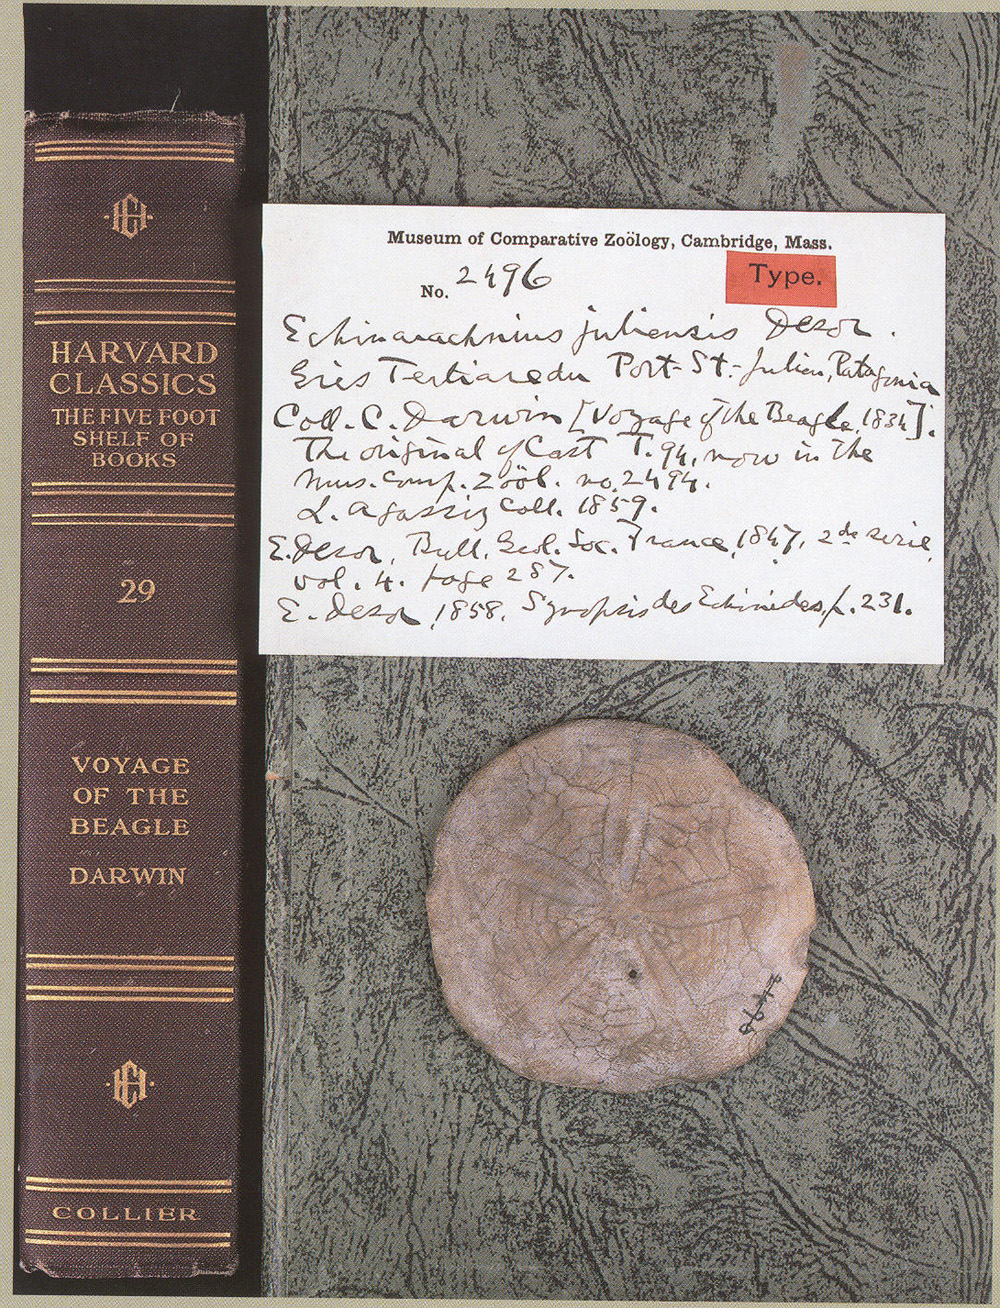 Sand dollar collected by Darwin with specimen label